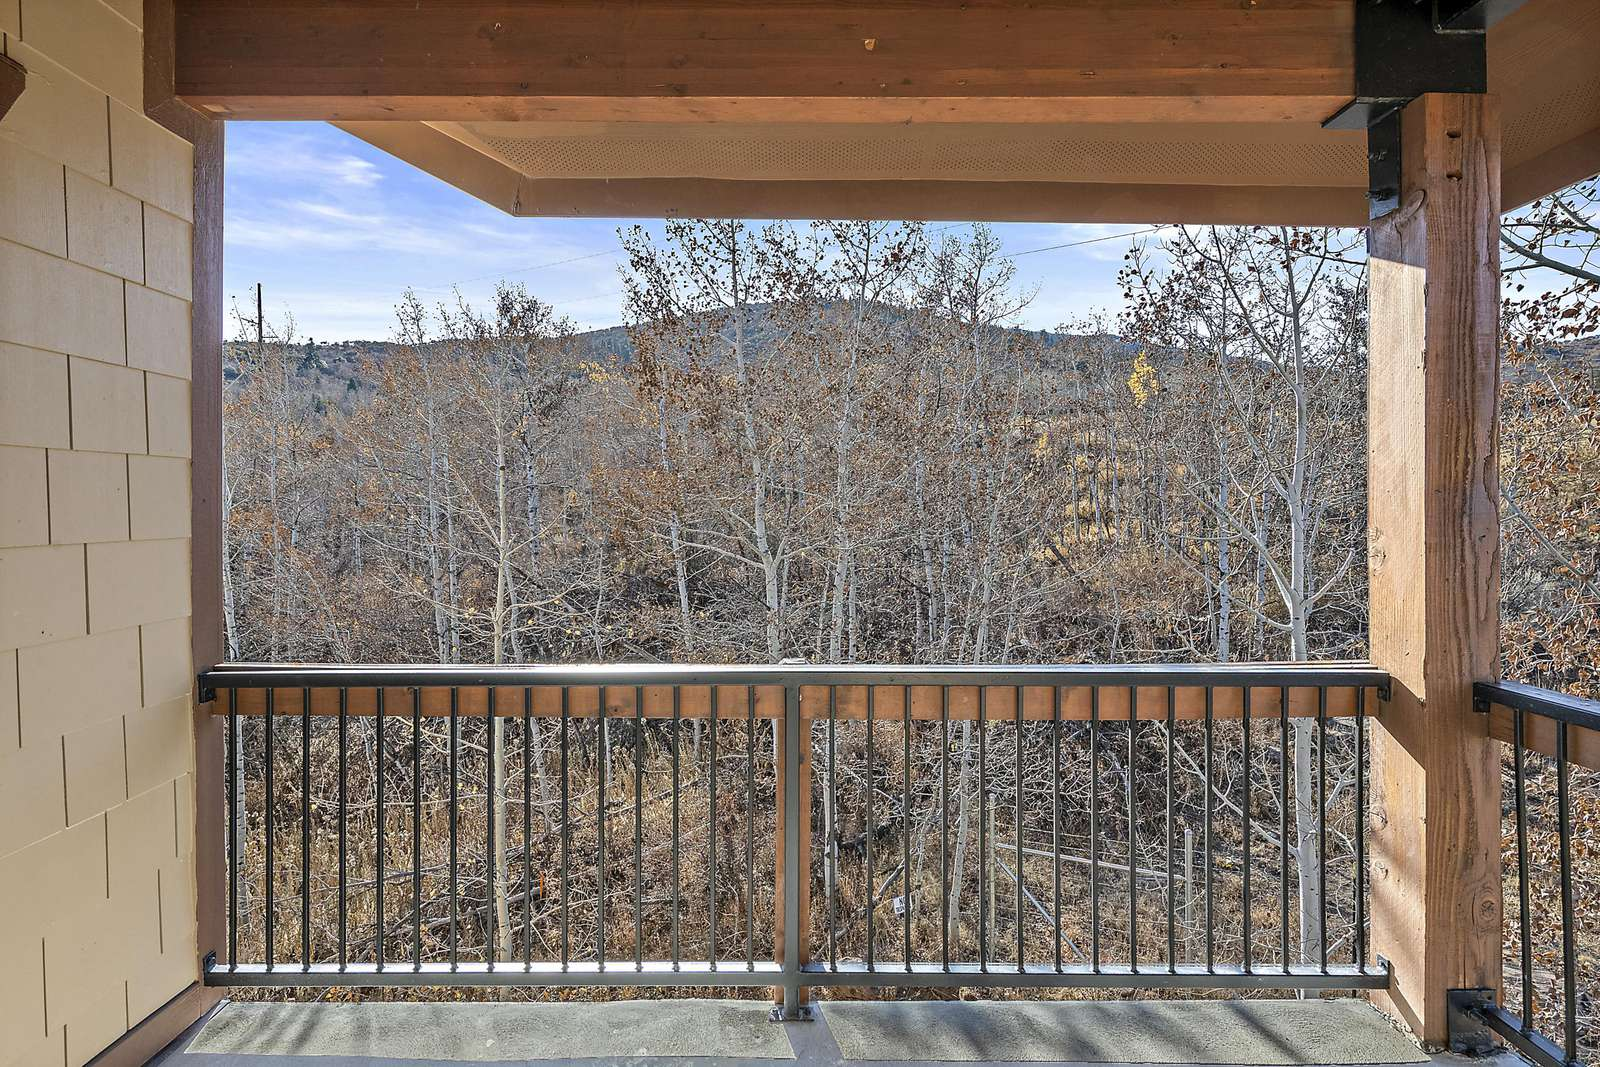 Deck overlooks trees and mountains